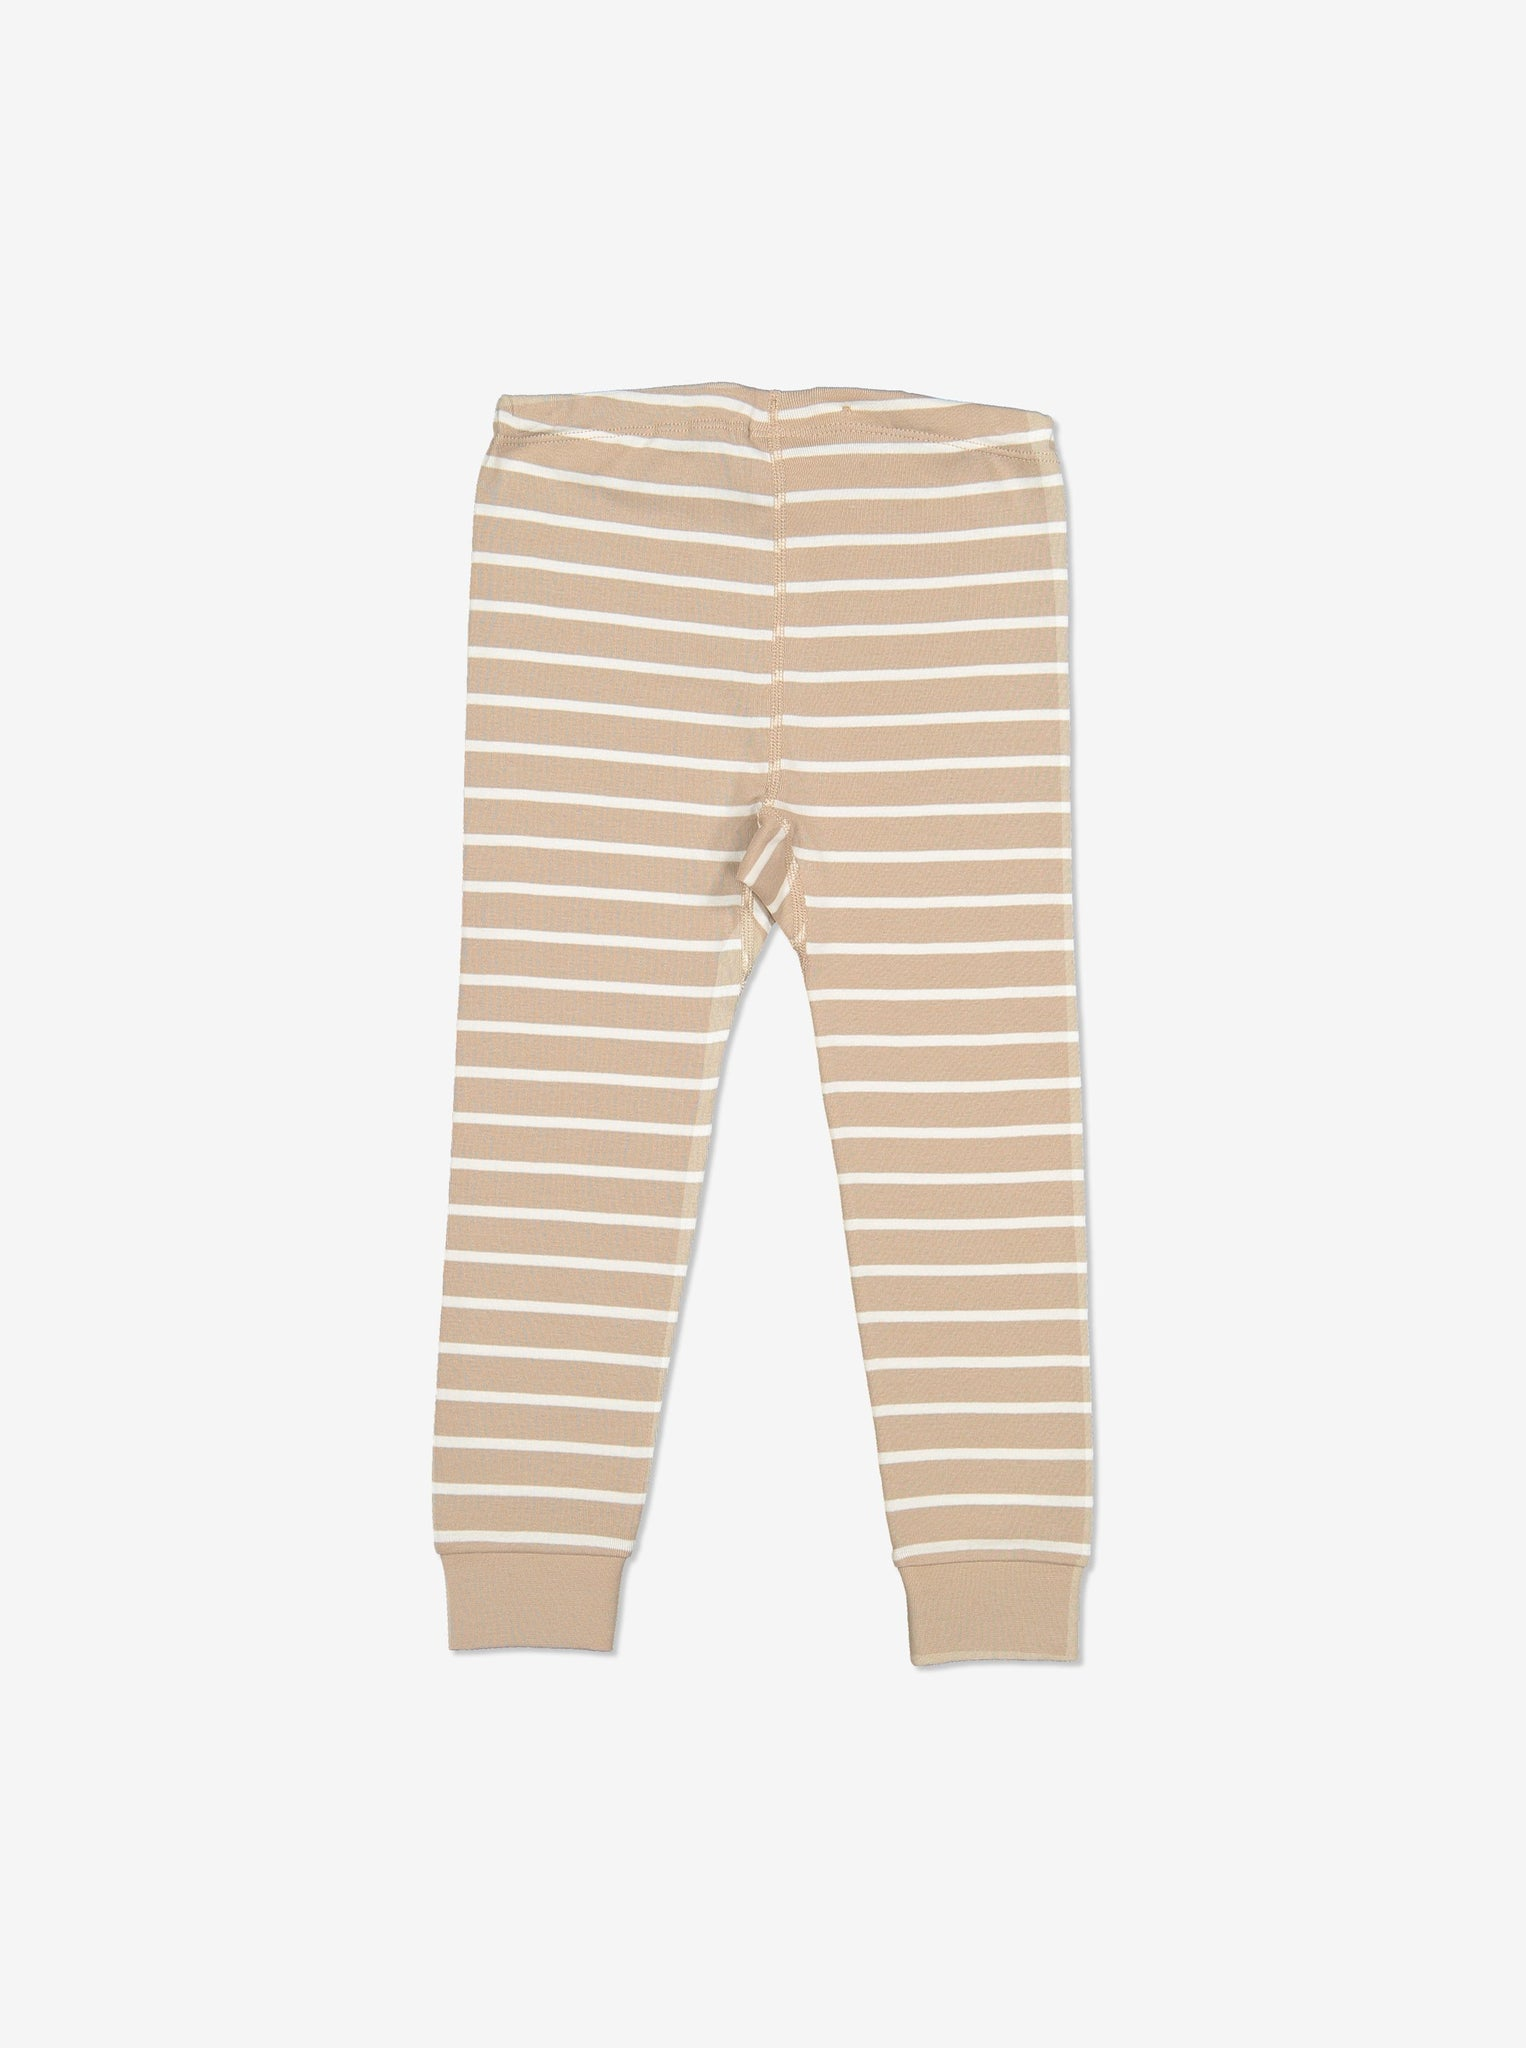 Striped Baby Trousers-Unisex-Preterm-2y-Brown